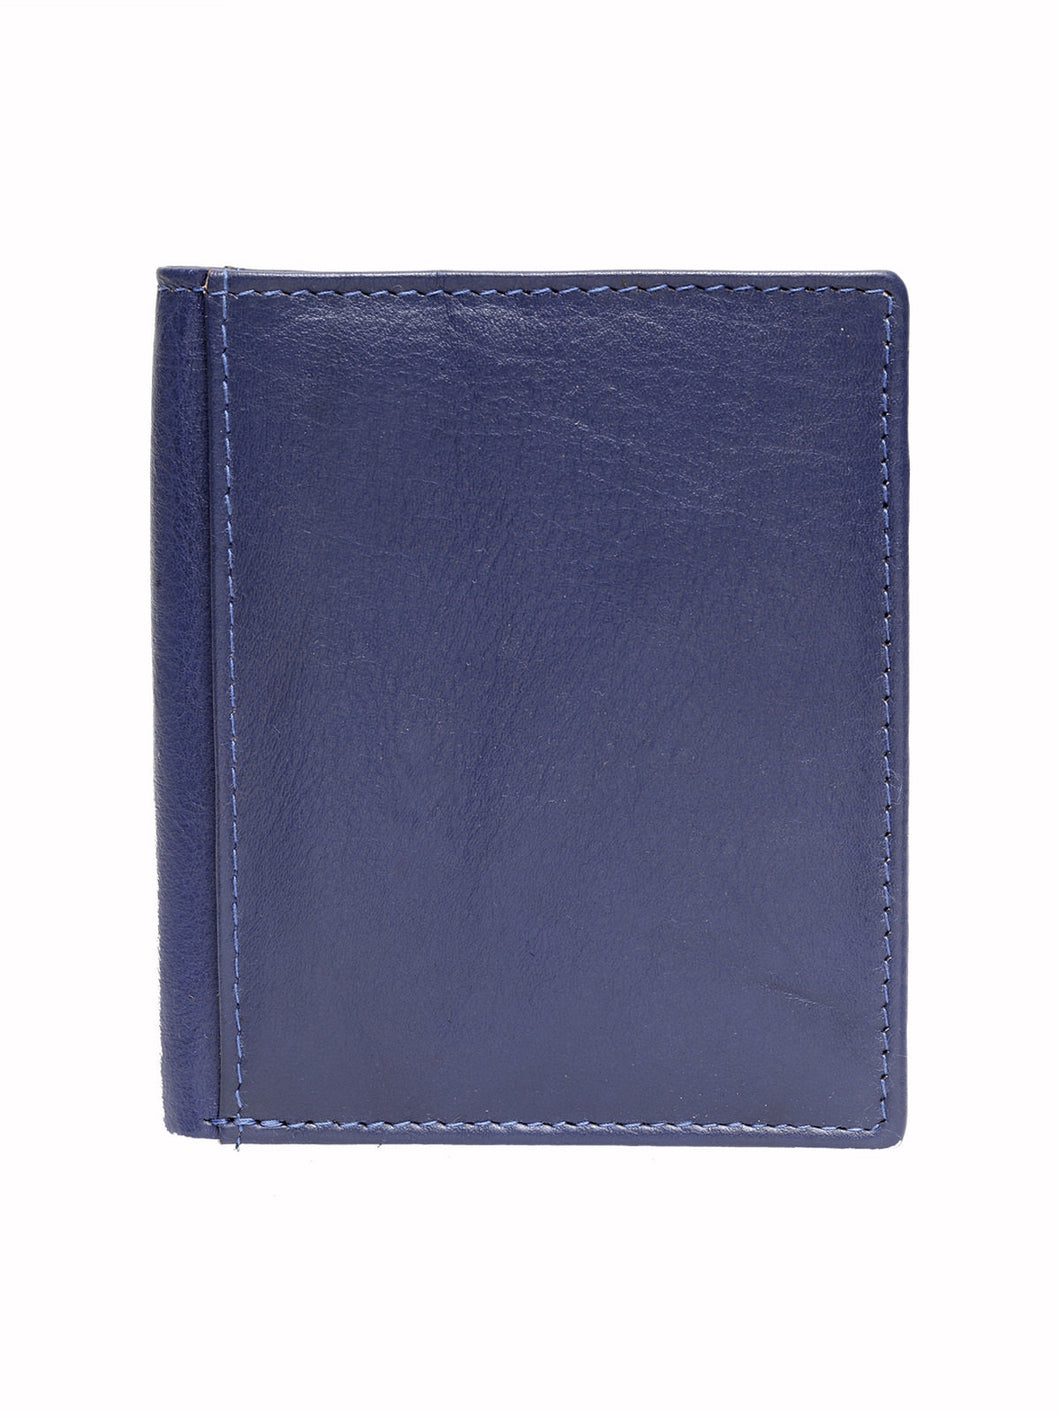 Teakwood Genuine Leather Wallets - Blue